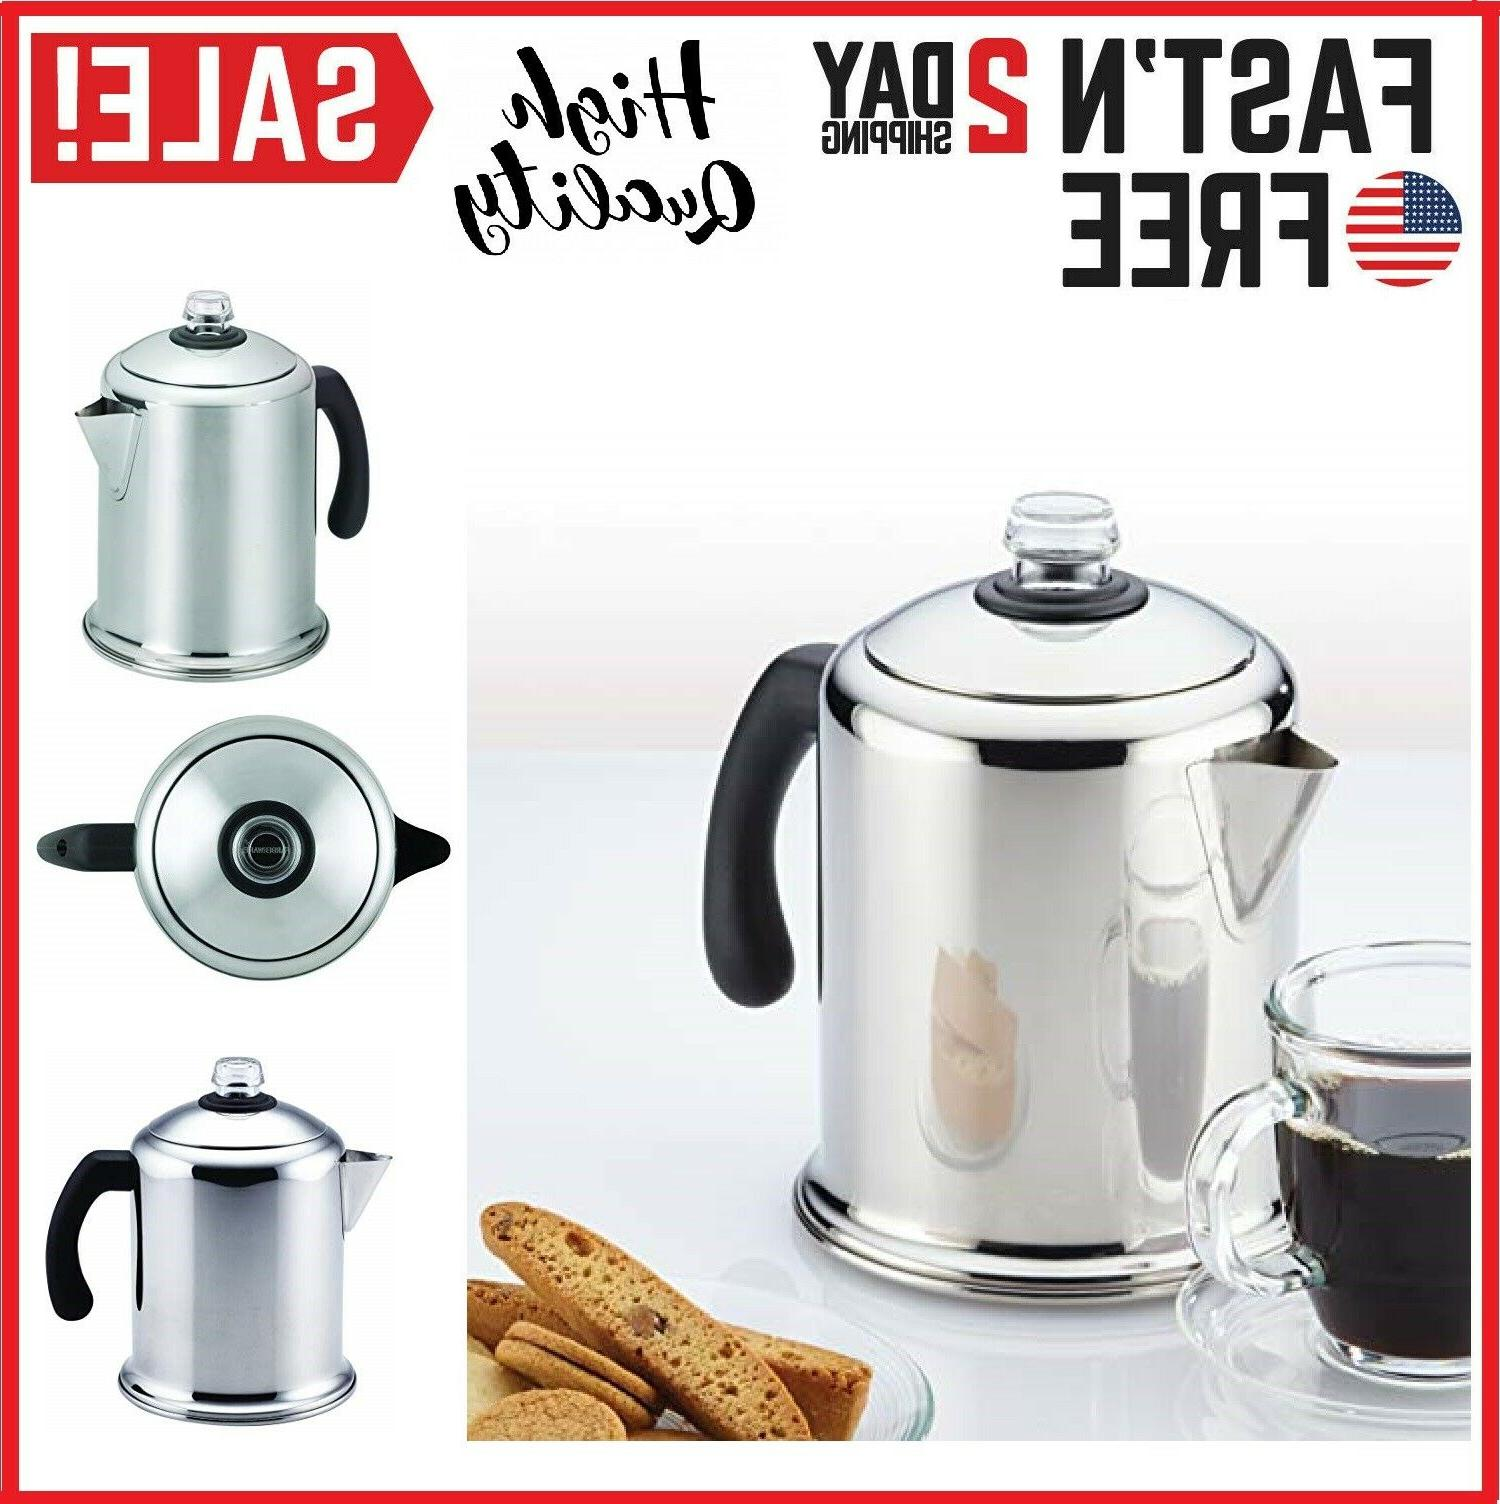 8 cup stainless steel percolator coffee stovetop